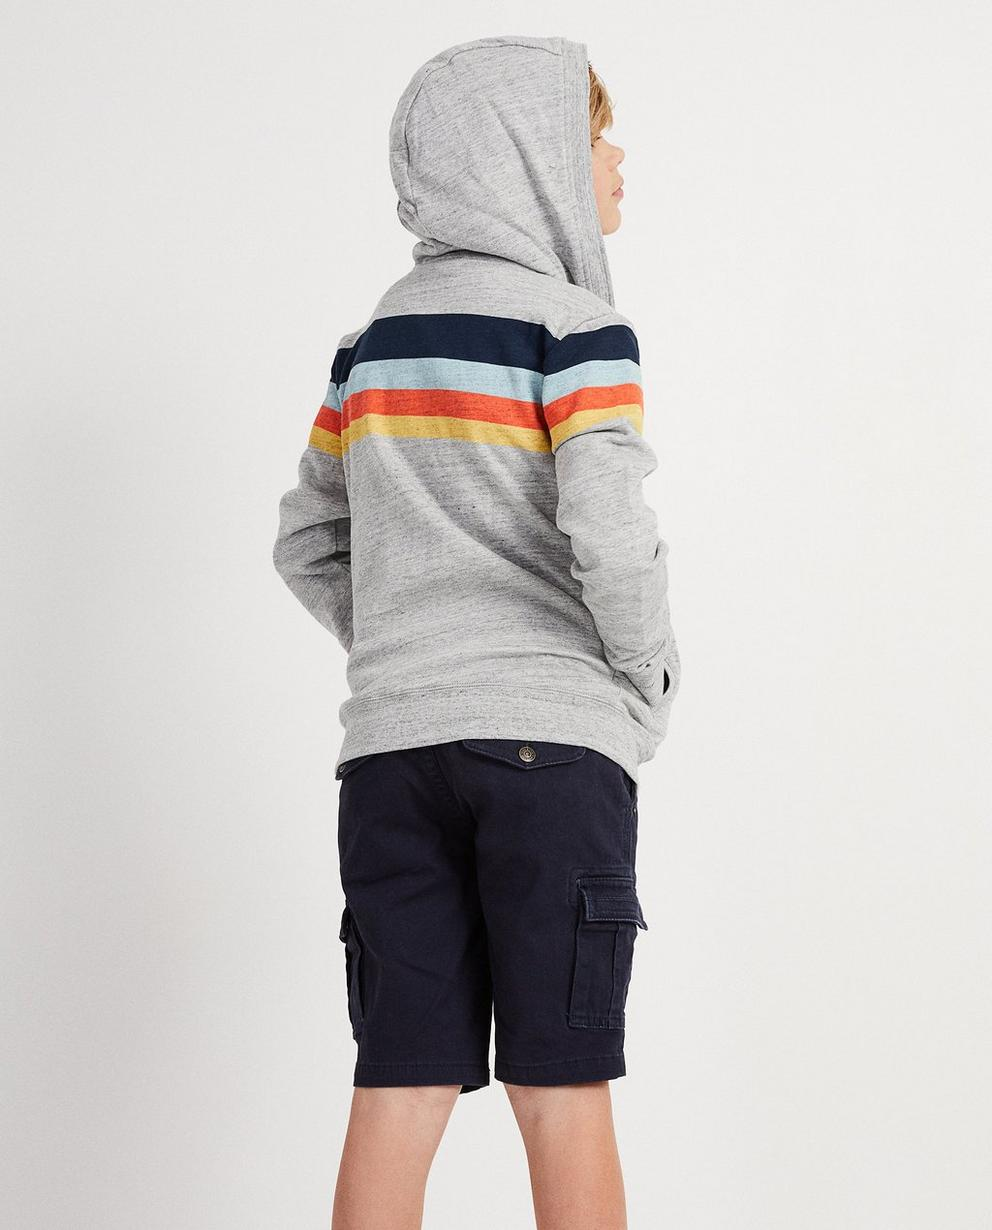 Strickjacken - Grau - Trainingsjacke mit Color-Block